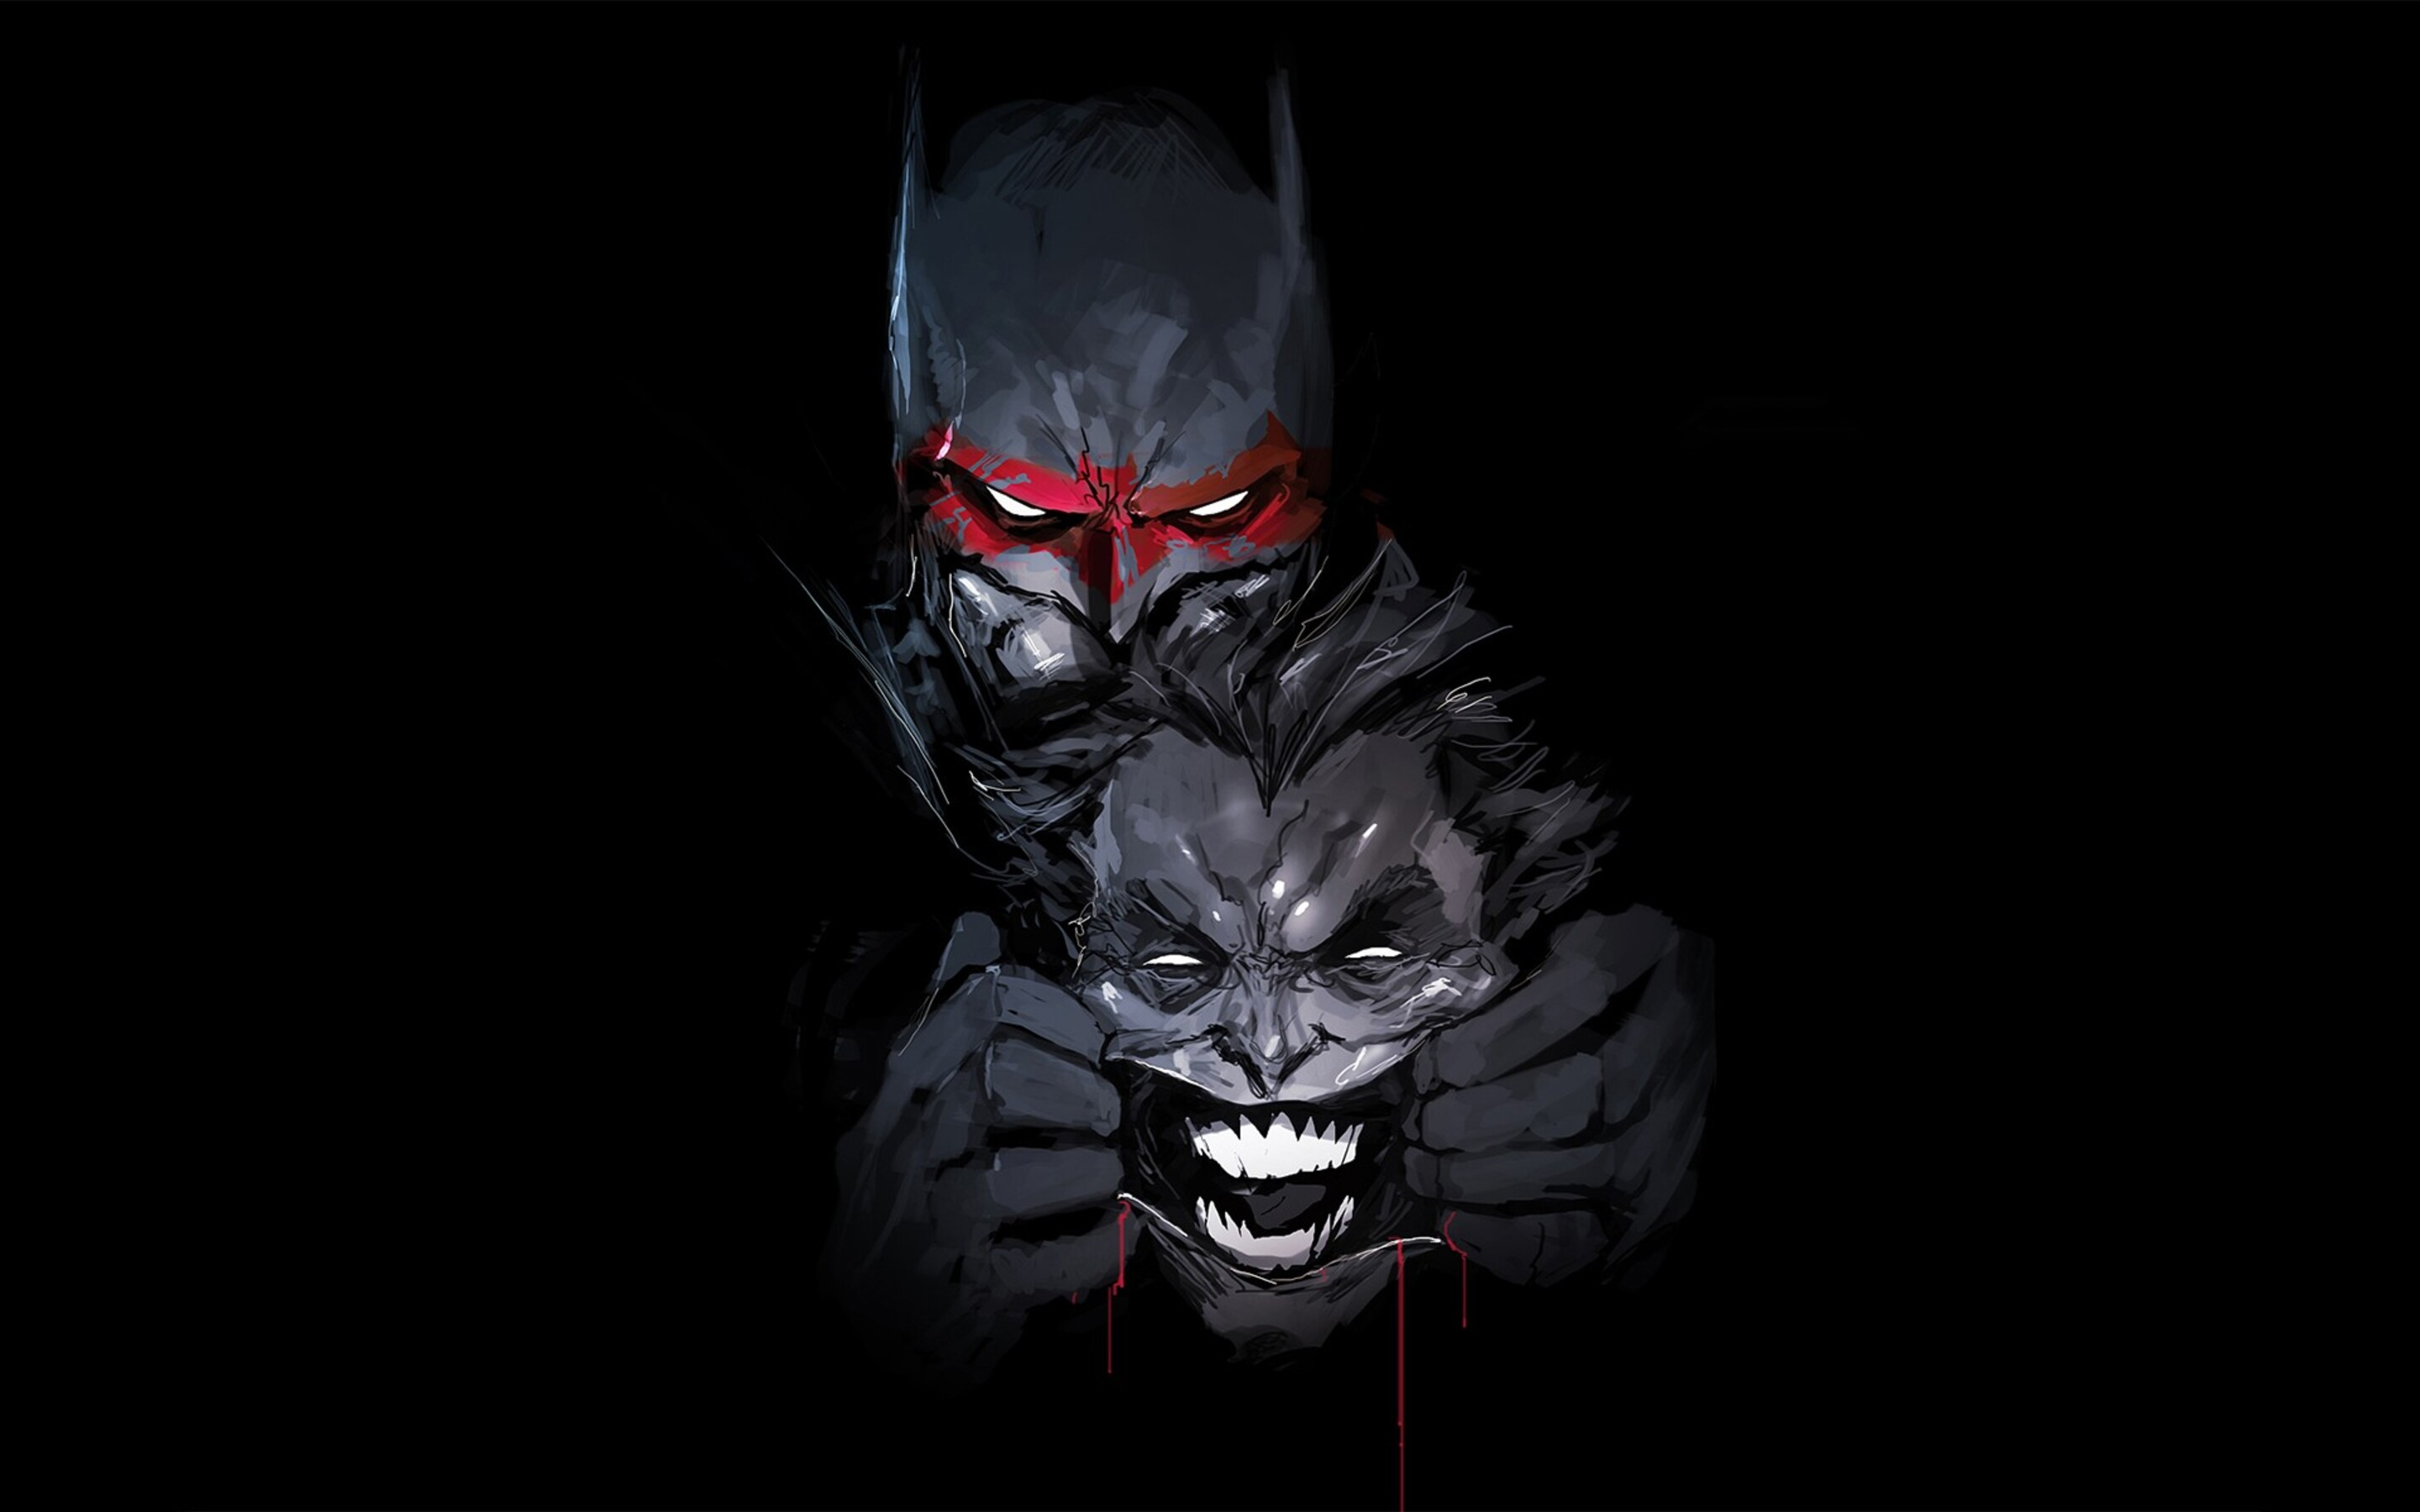 Great Wallpaper Macbook Batman - batman-joker-artwork-new-2880x1800  Snapshot_24348.jpg